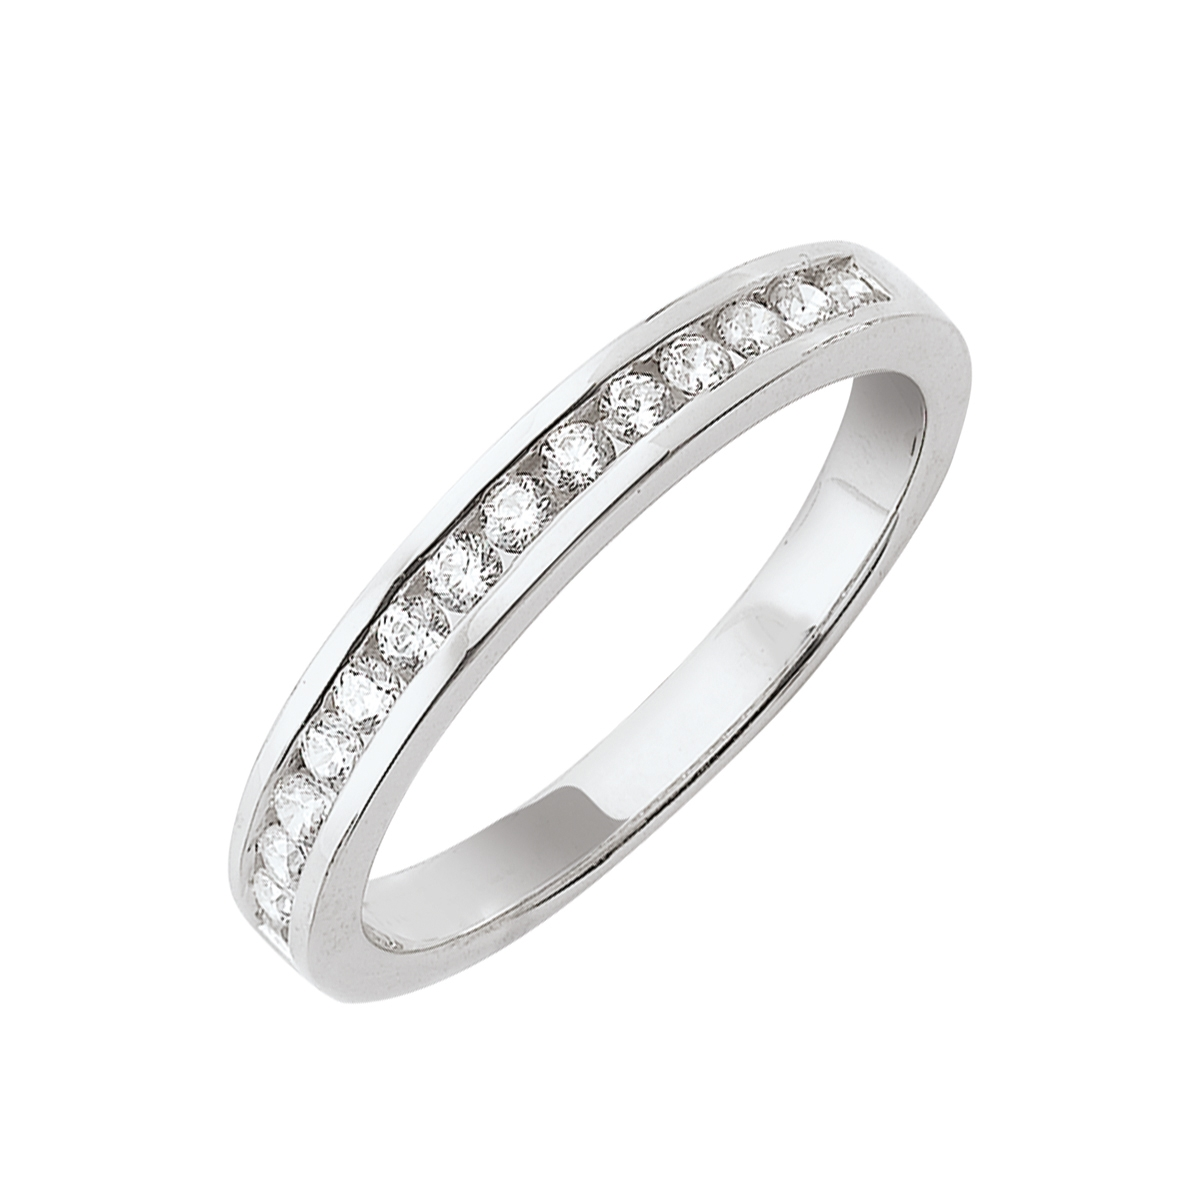 Alliance demi-tour serti rail or blanc - Diamants synthétiques 0,50 carat